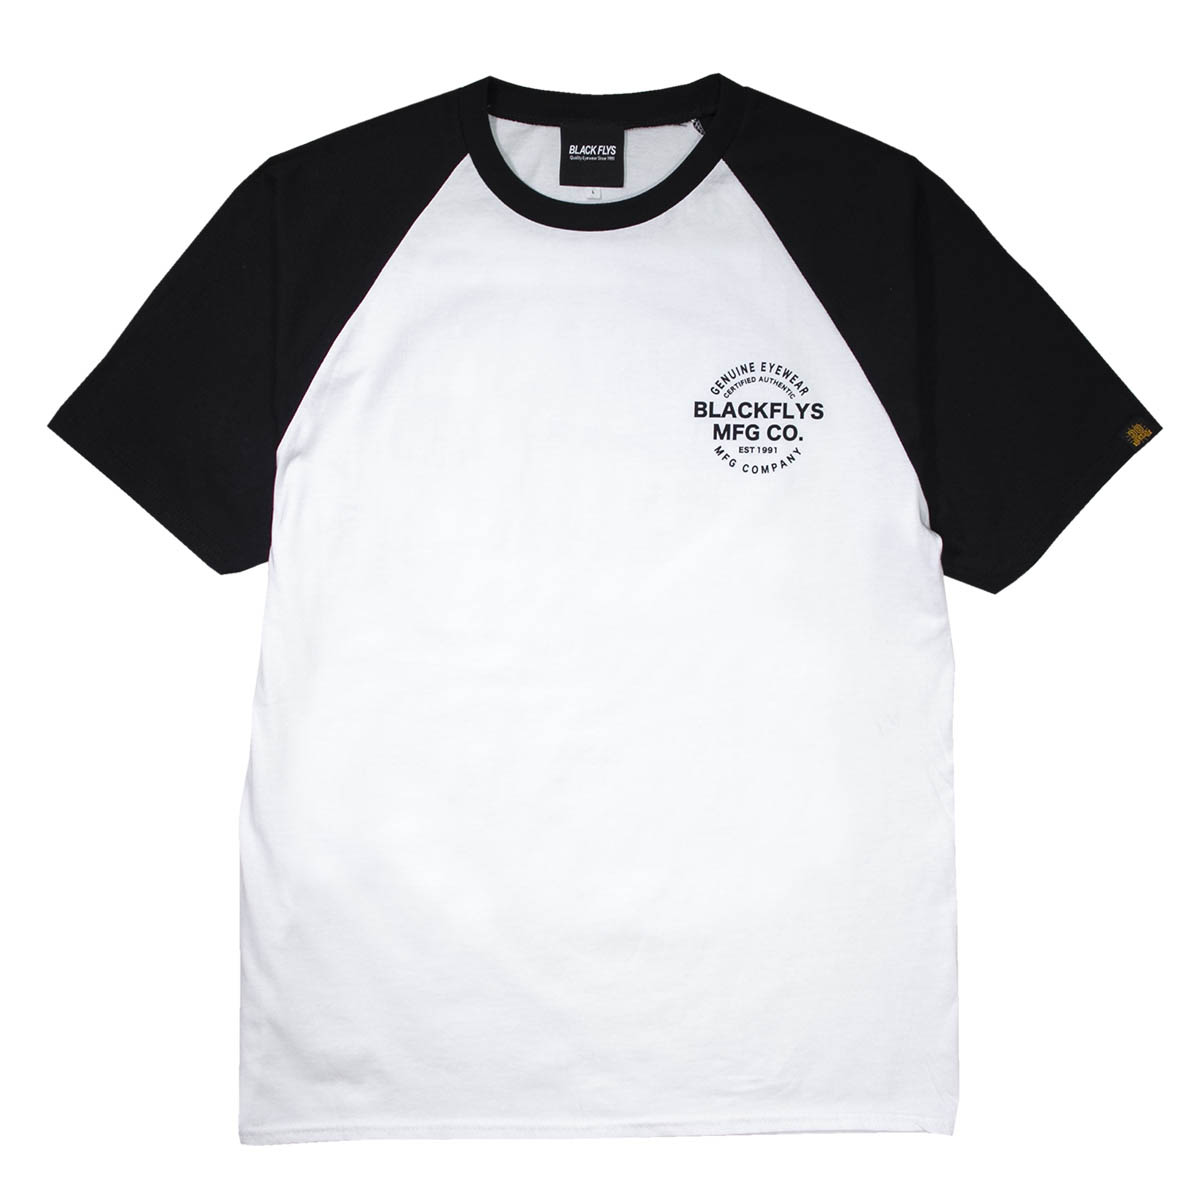 AUTHENTICA S/S T-SHIRTS